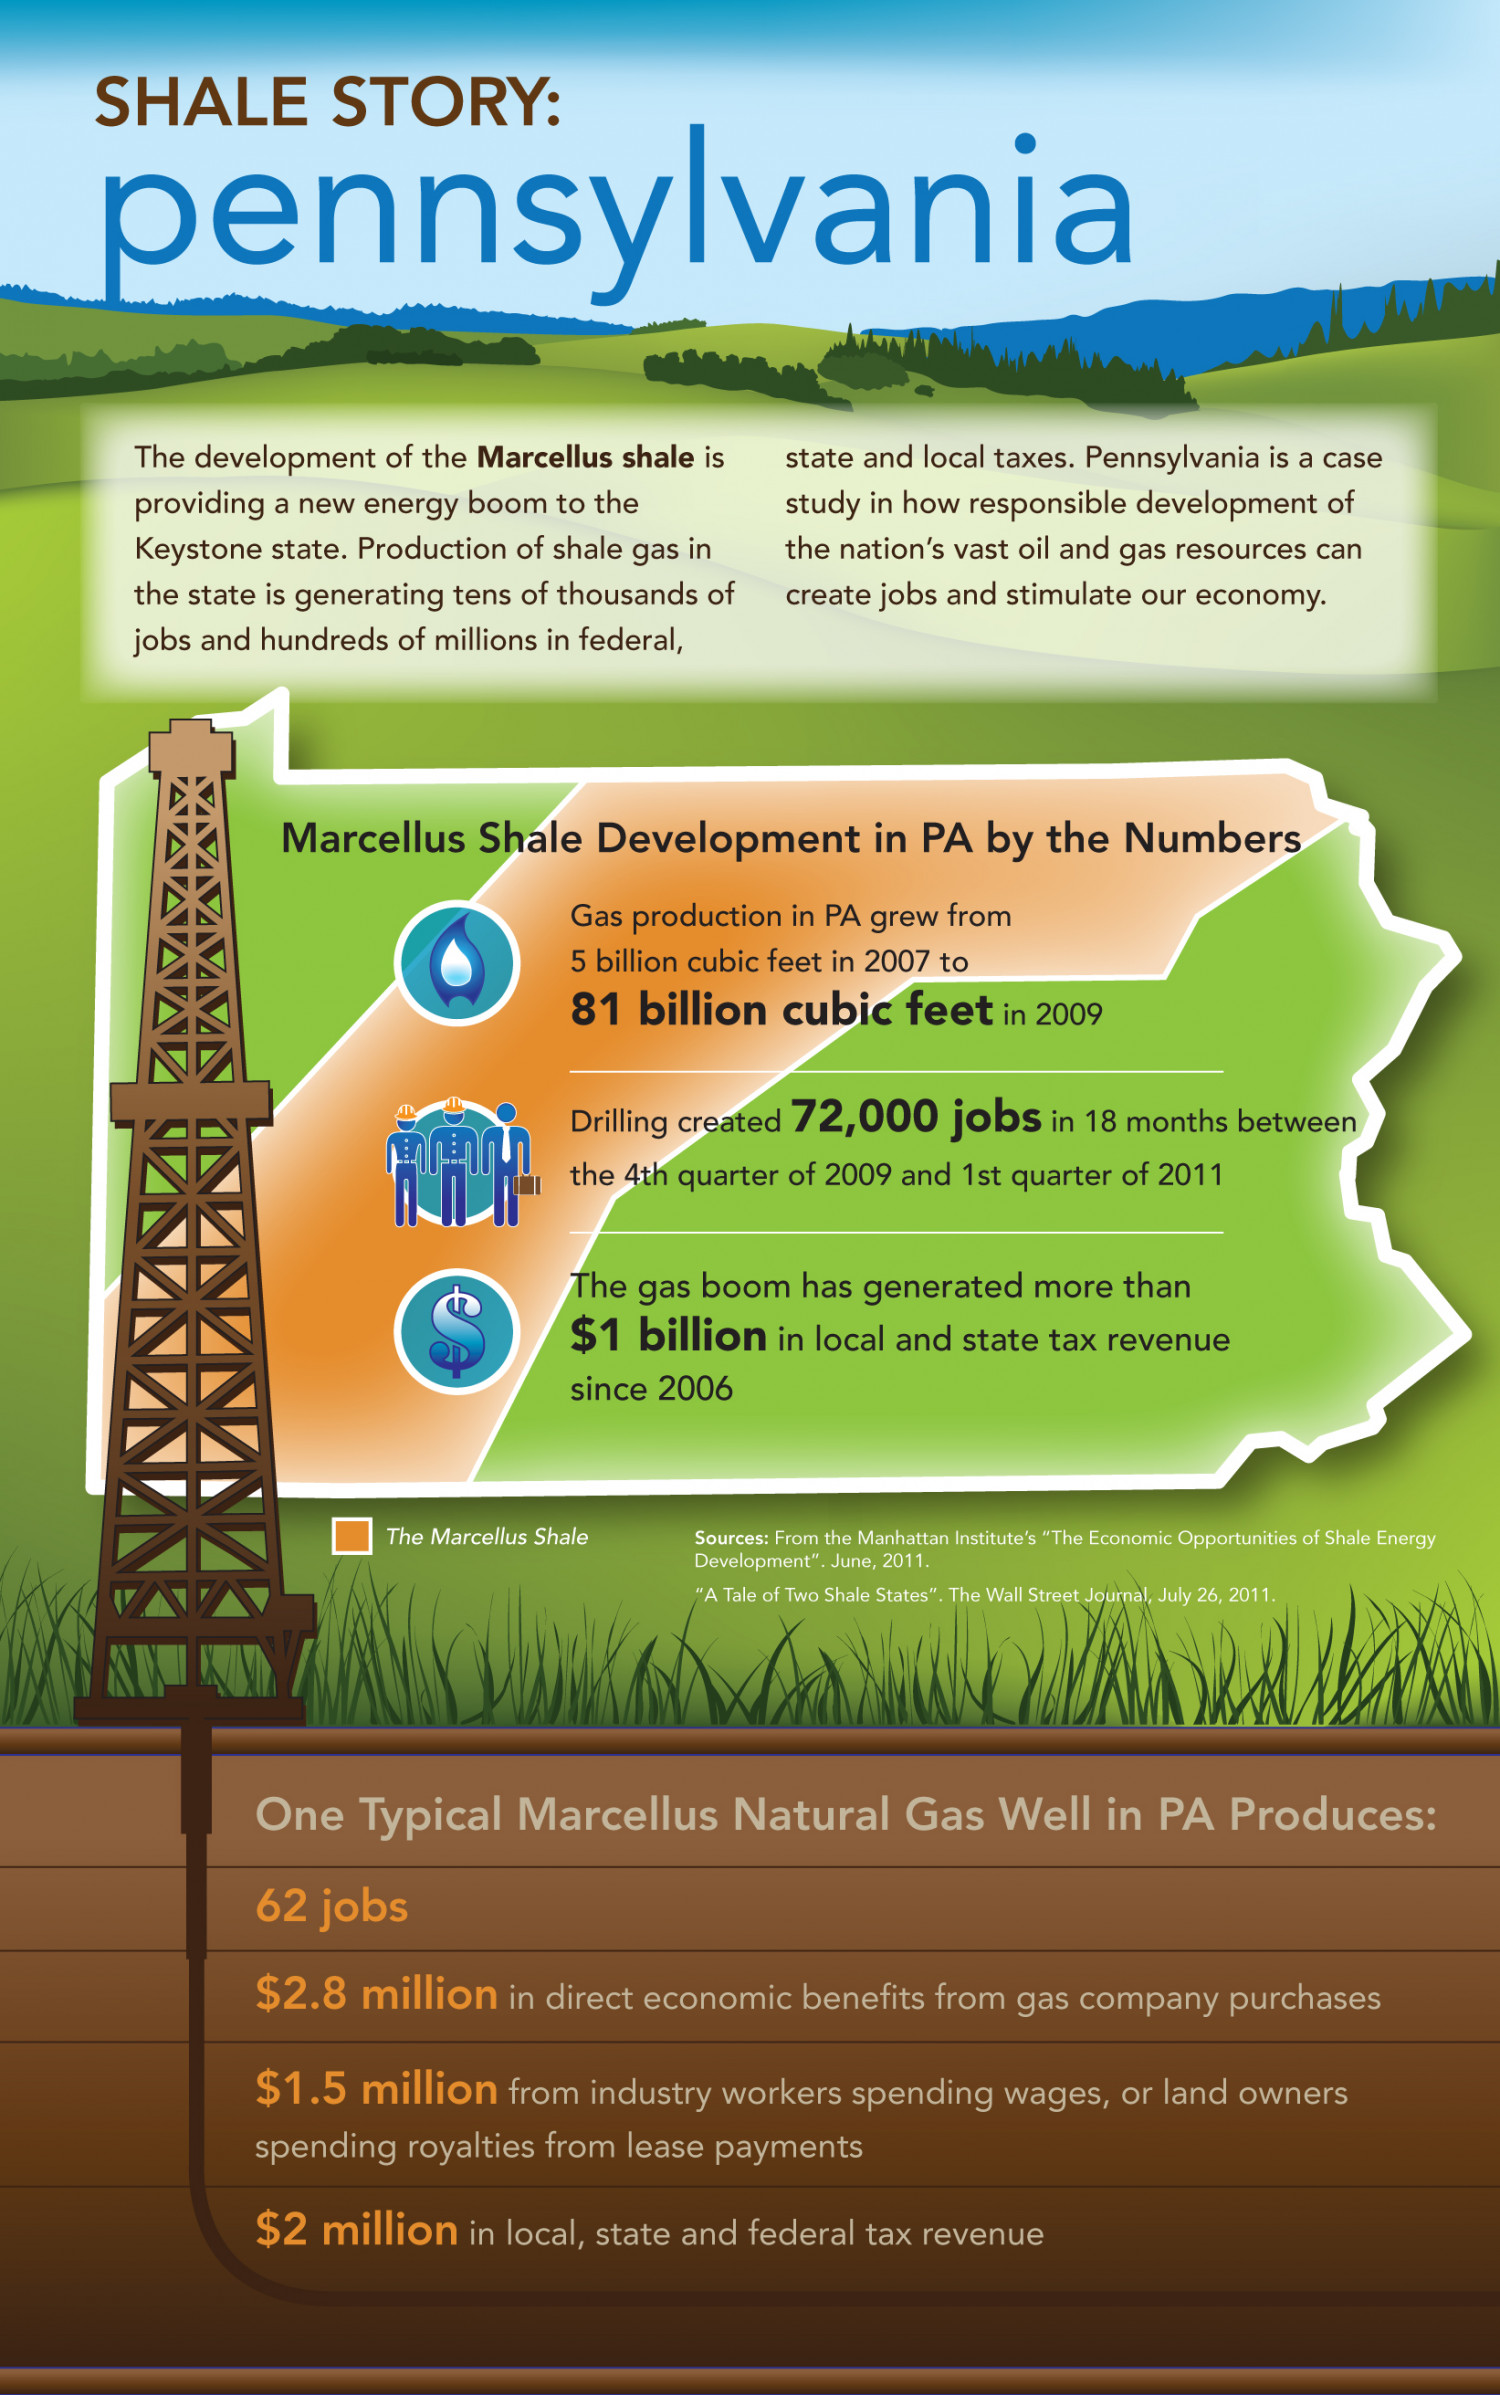 Pennsylvani's Marcellus Shale Story Infographic